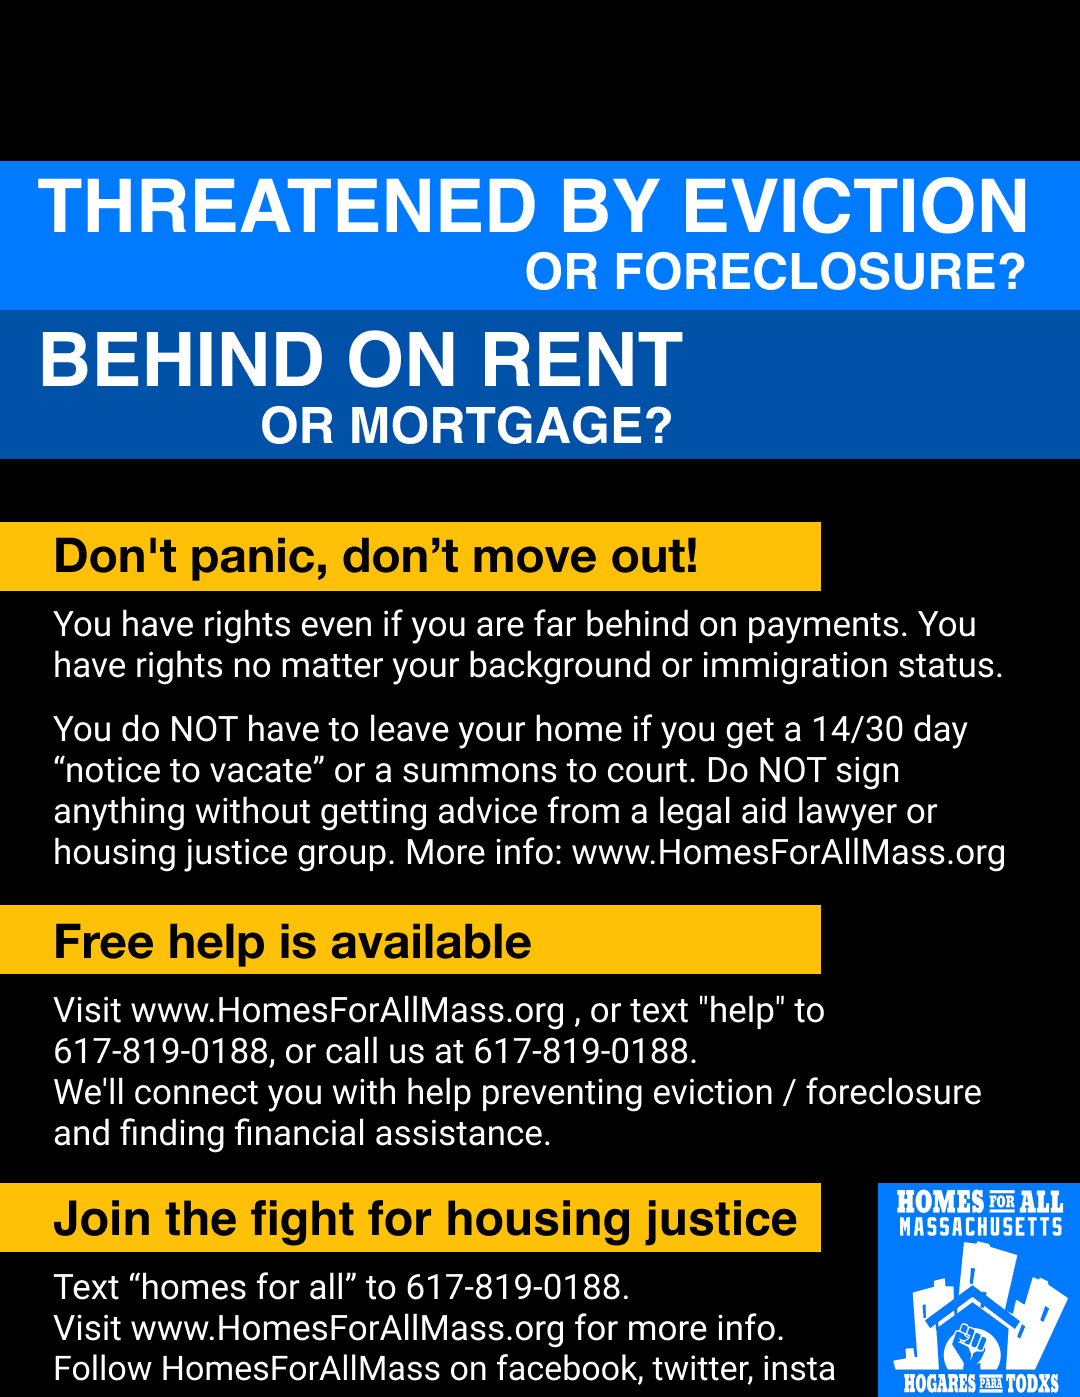 flyer about rights of tenants and homeowners following end of eviction moratorium